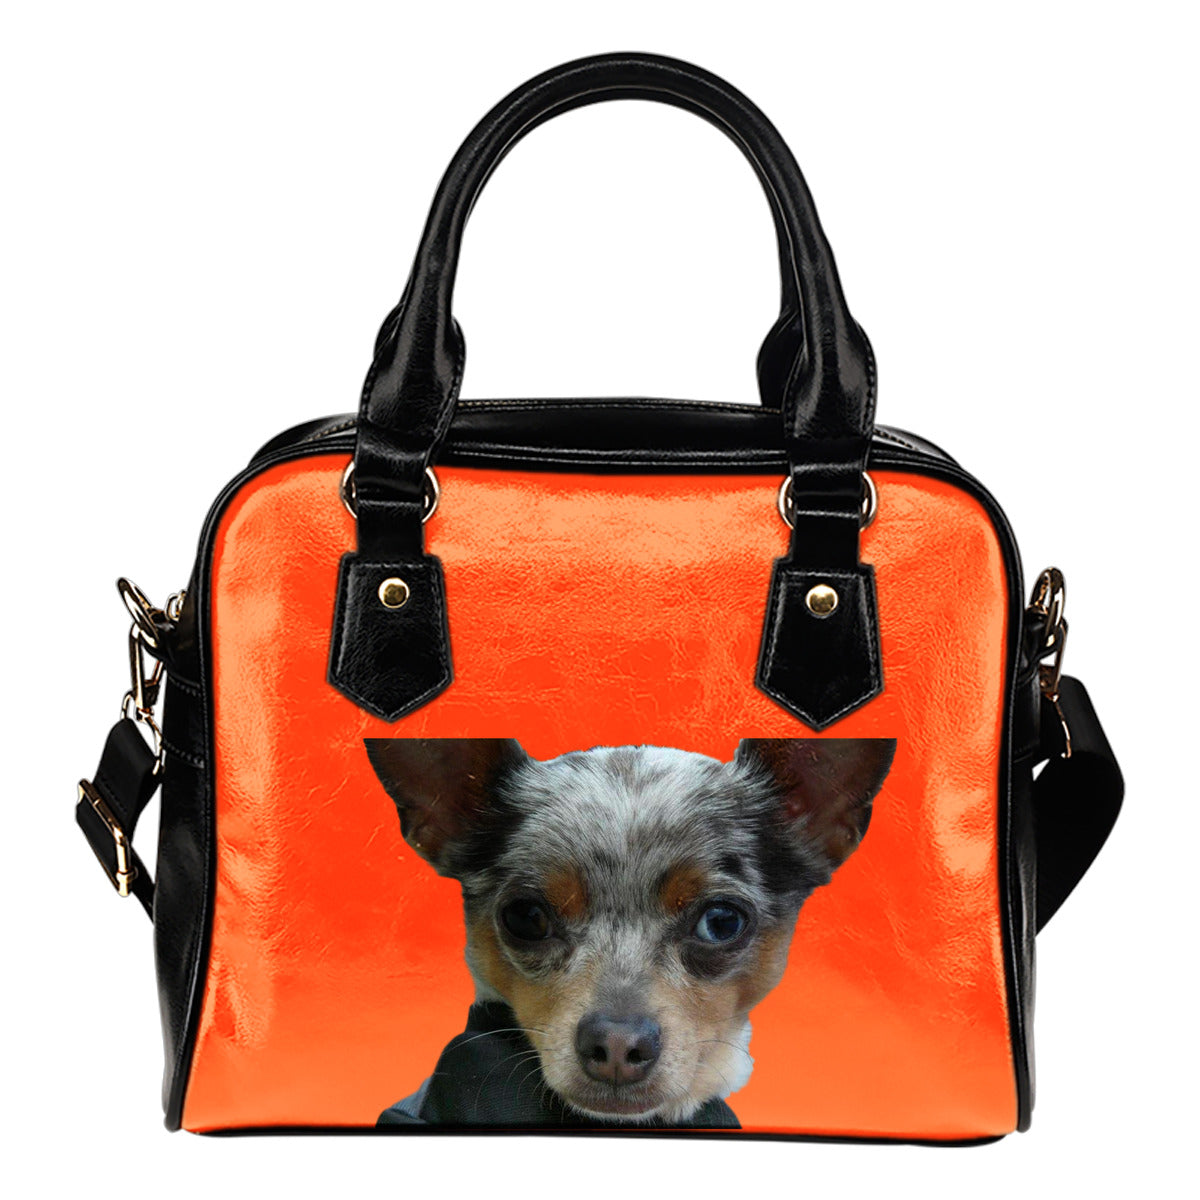 Chihuahua Shoulder Bag - Blue Merle Orange